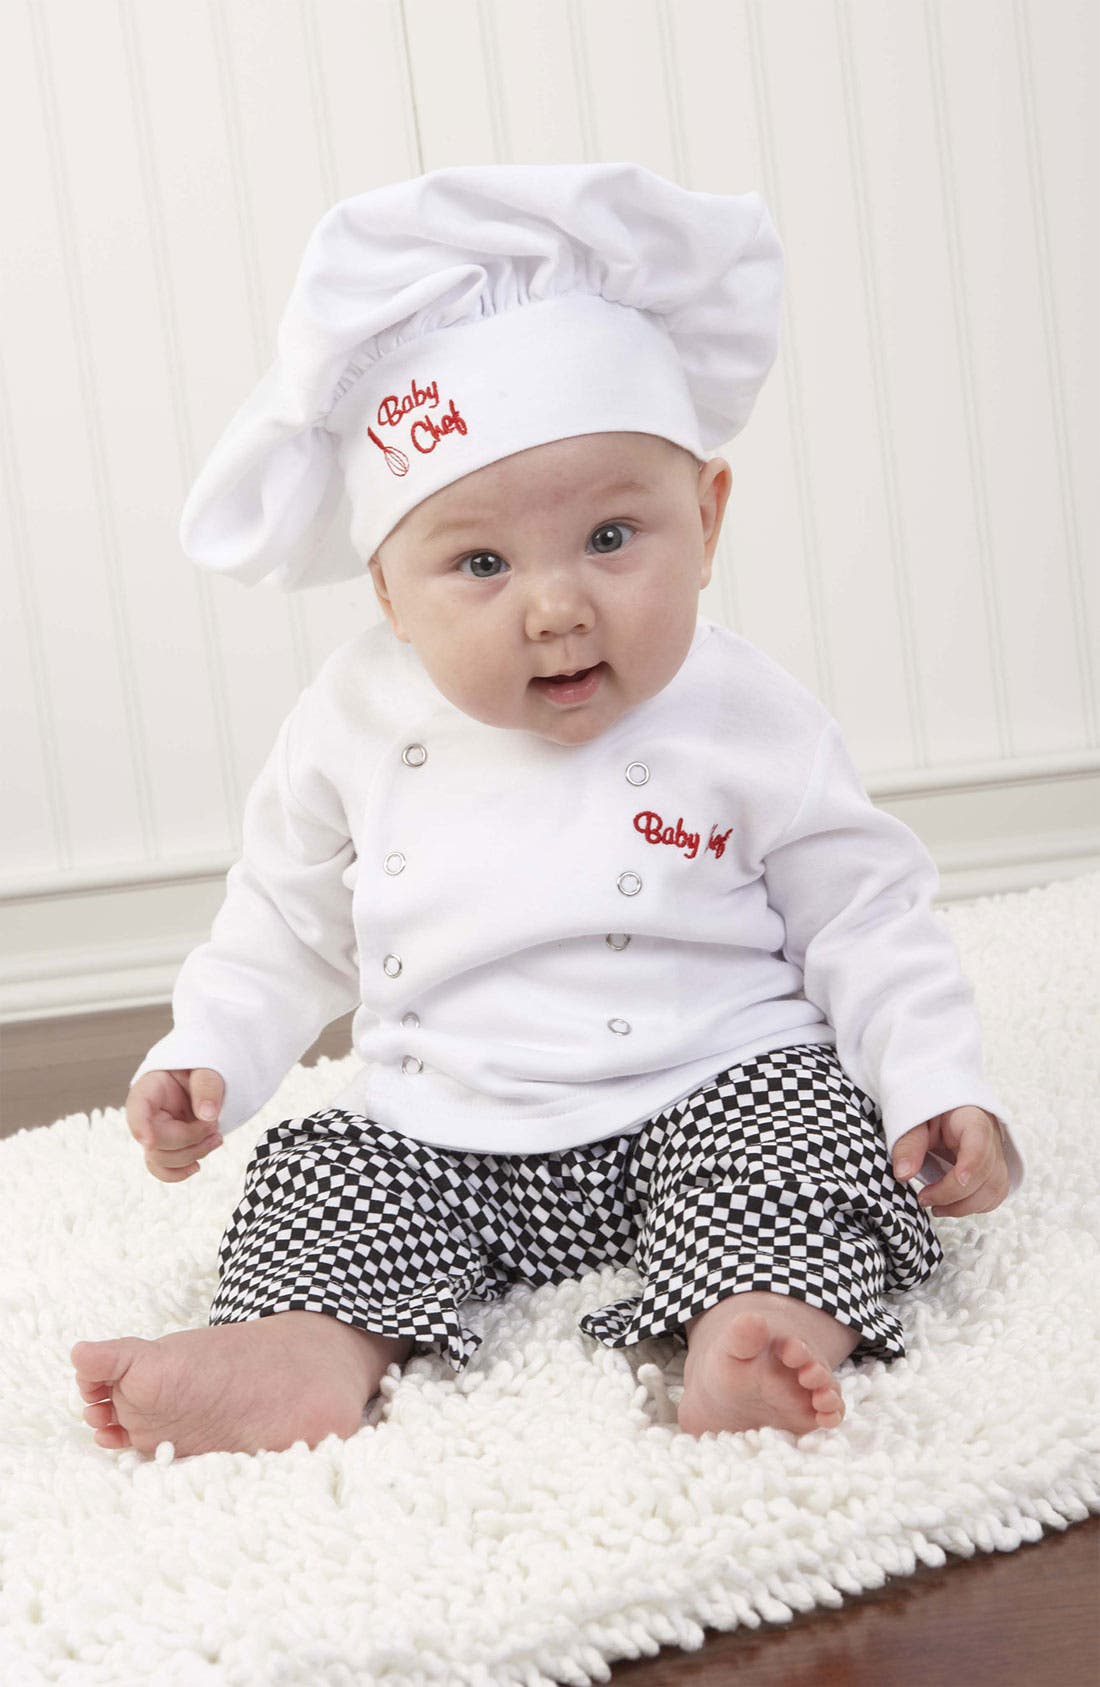 Main Image - Baby Aspen 'Big Dreamzzz - Chef' Shirt, Pants & Hat (Baby)